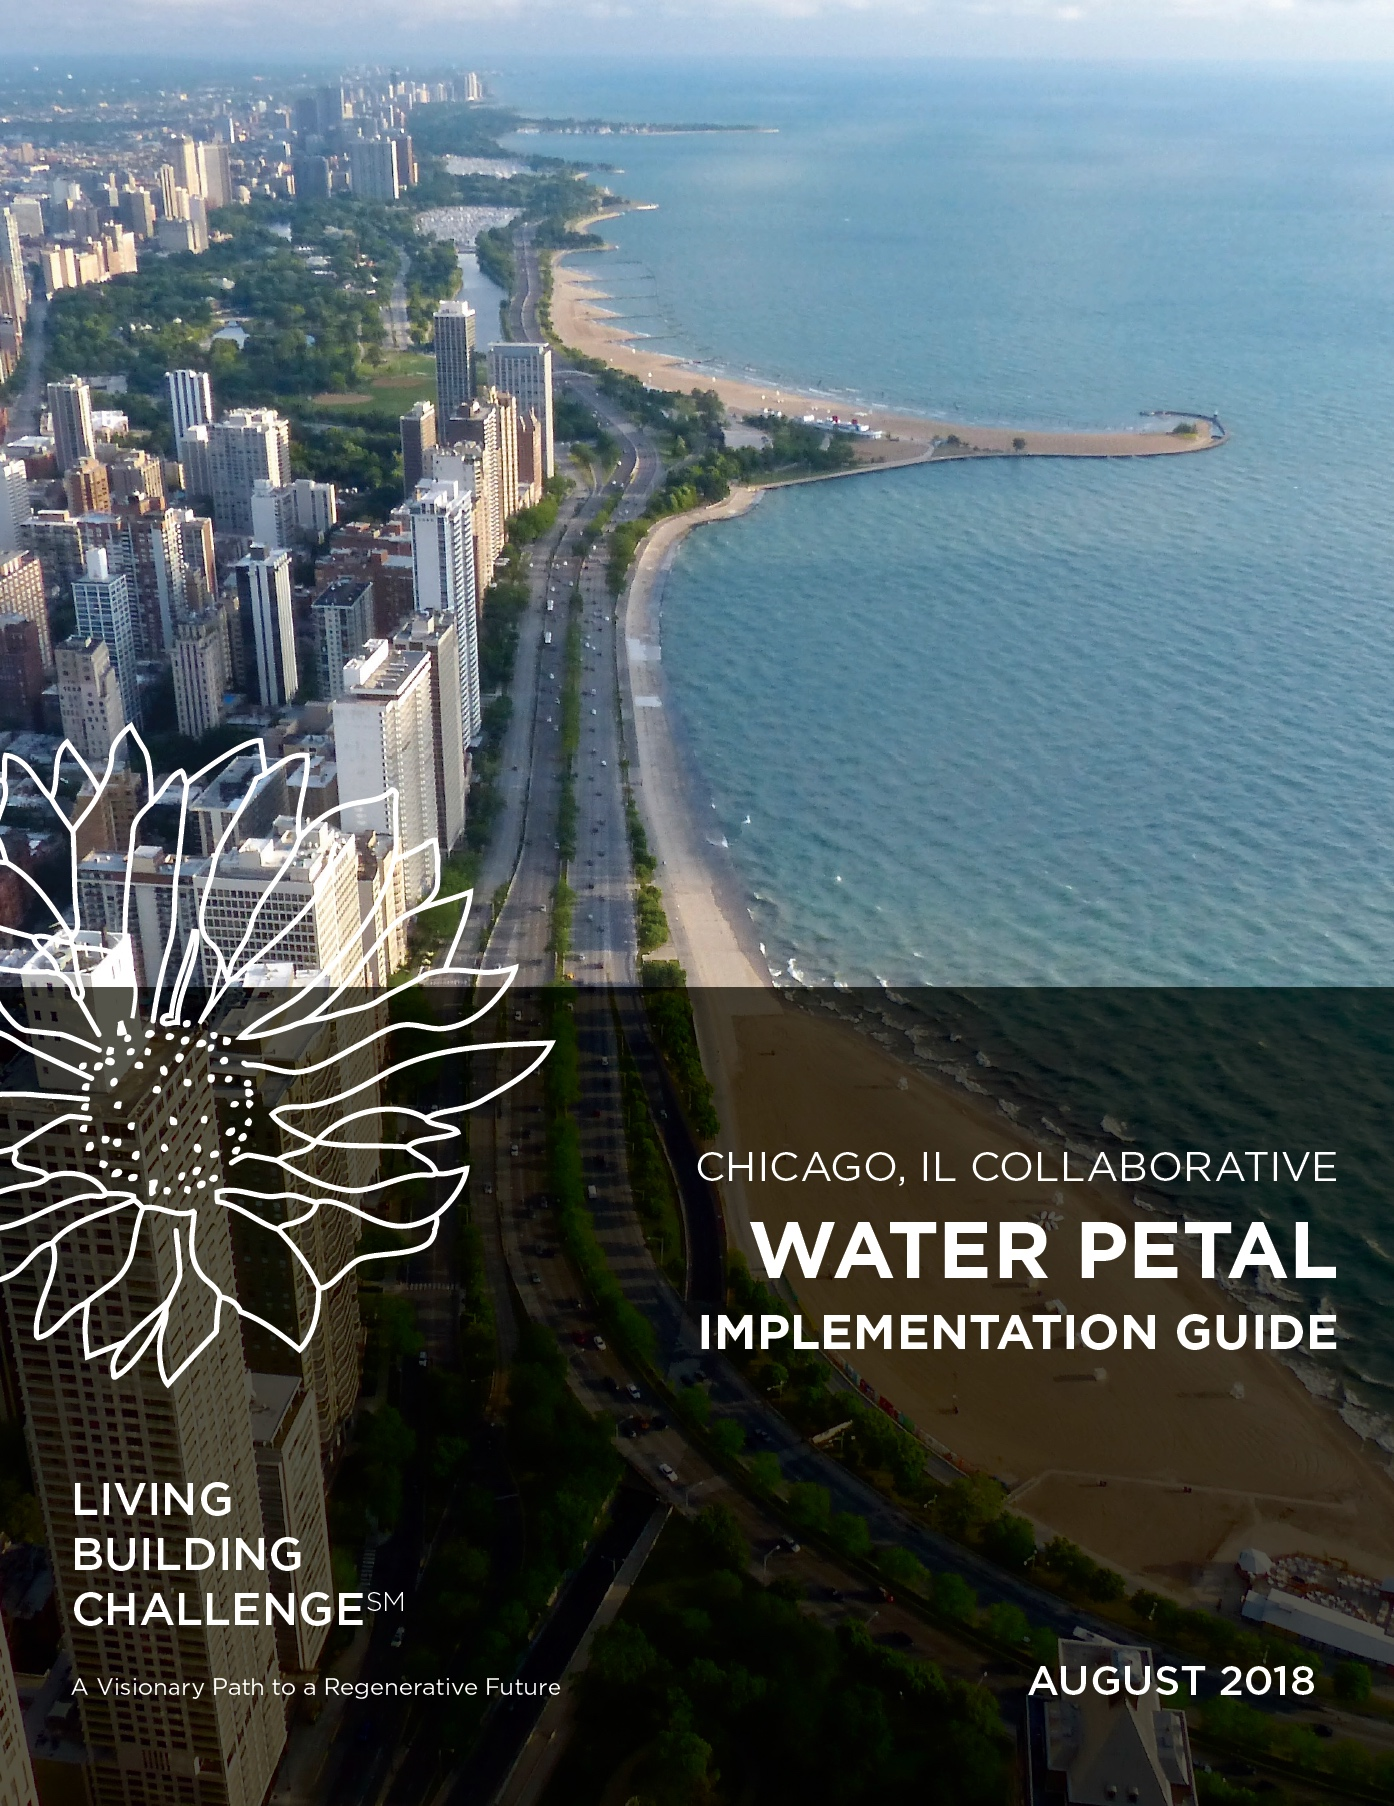 Living Building Challenge Chicago Collaborative Water Implementation Petal Guide - A Resource Guide for Chicago-area project teams considering a pursuit of the Water Petal through the Living Building Challenge. The Implementation Guide discusses local resources, challenges, and opportunities on the way toward achieving Net Positive Water.